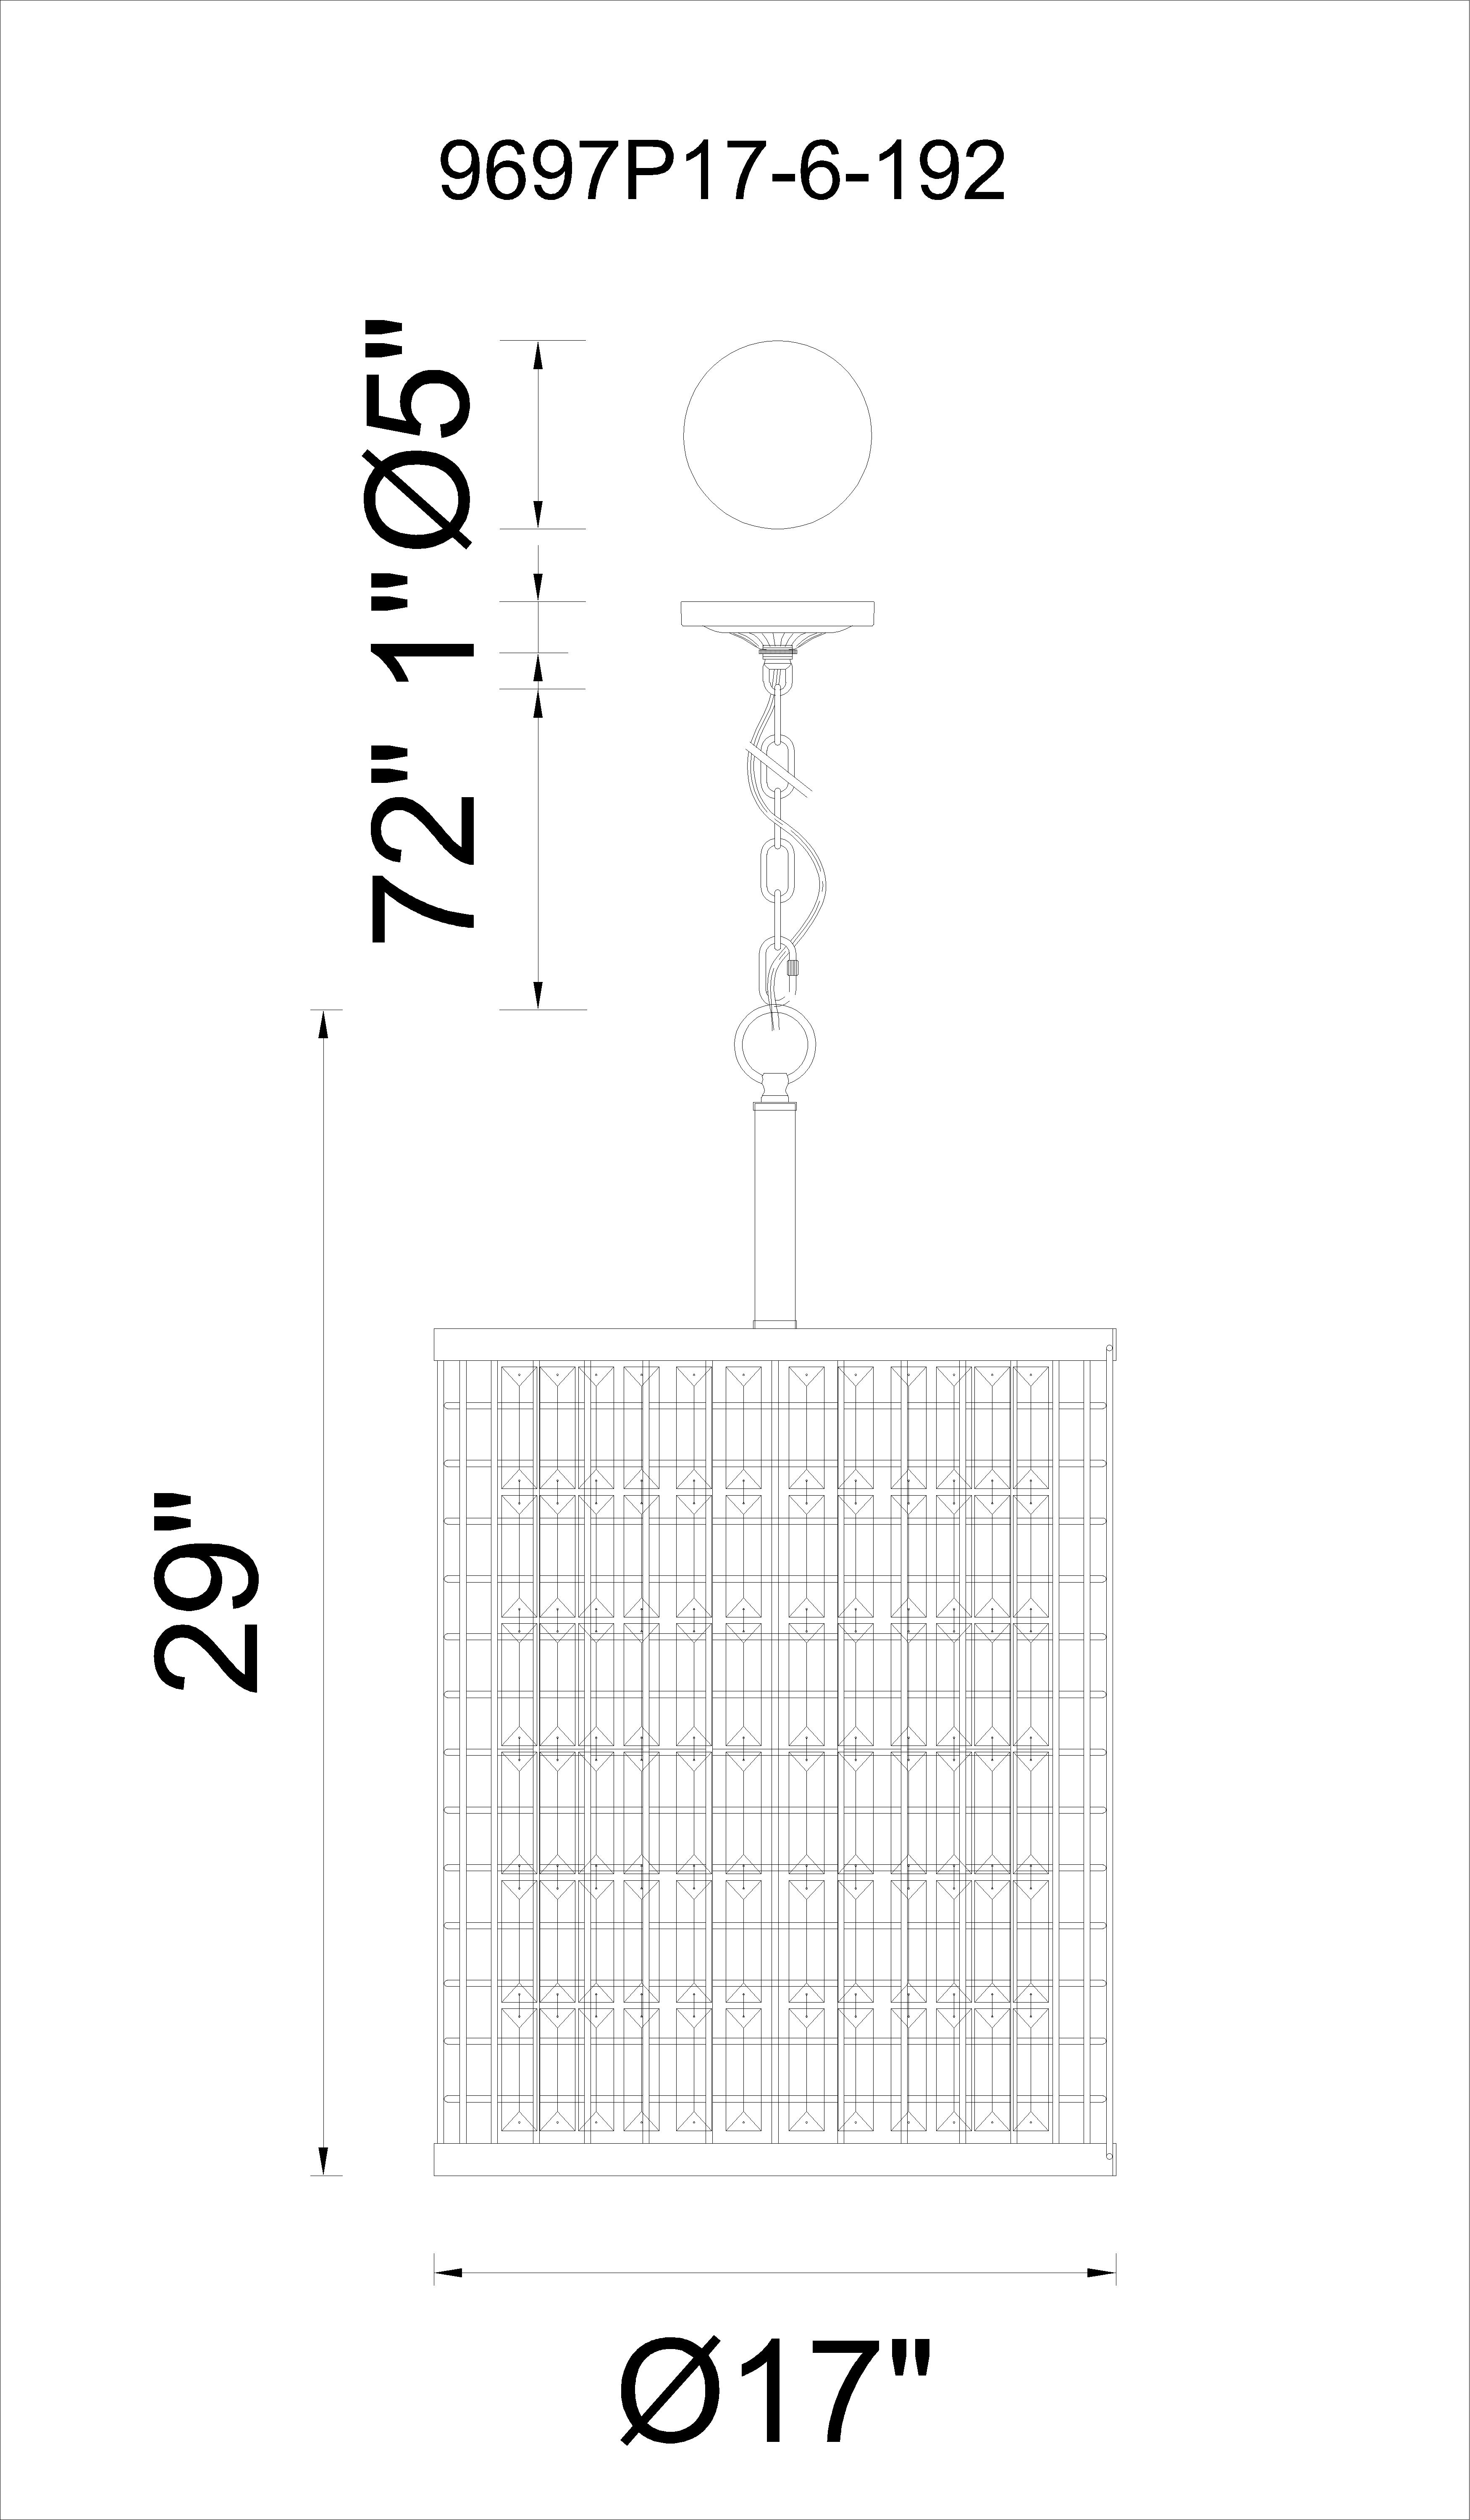 CWI Lighting Meghna 6 Light Up Chandelier With Brown Finish Model: 9697P17-6-192 Line Drawing